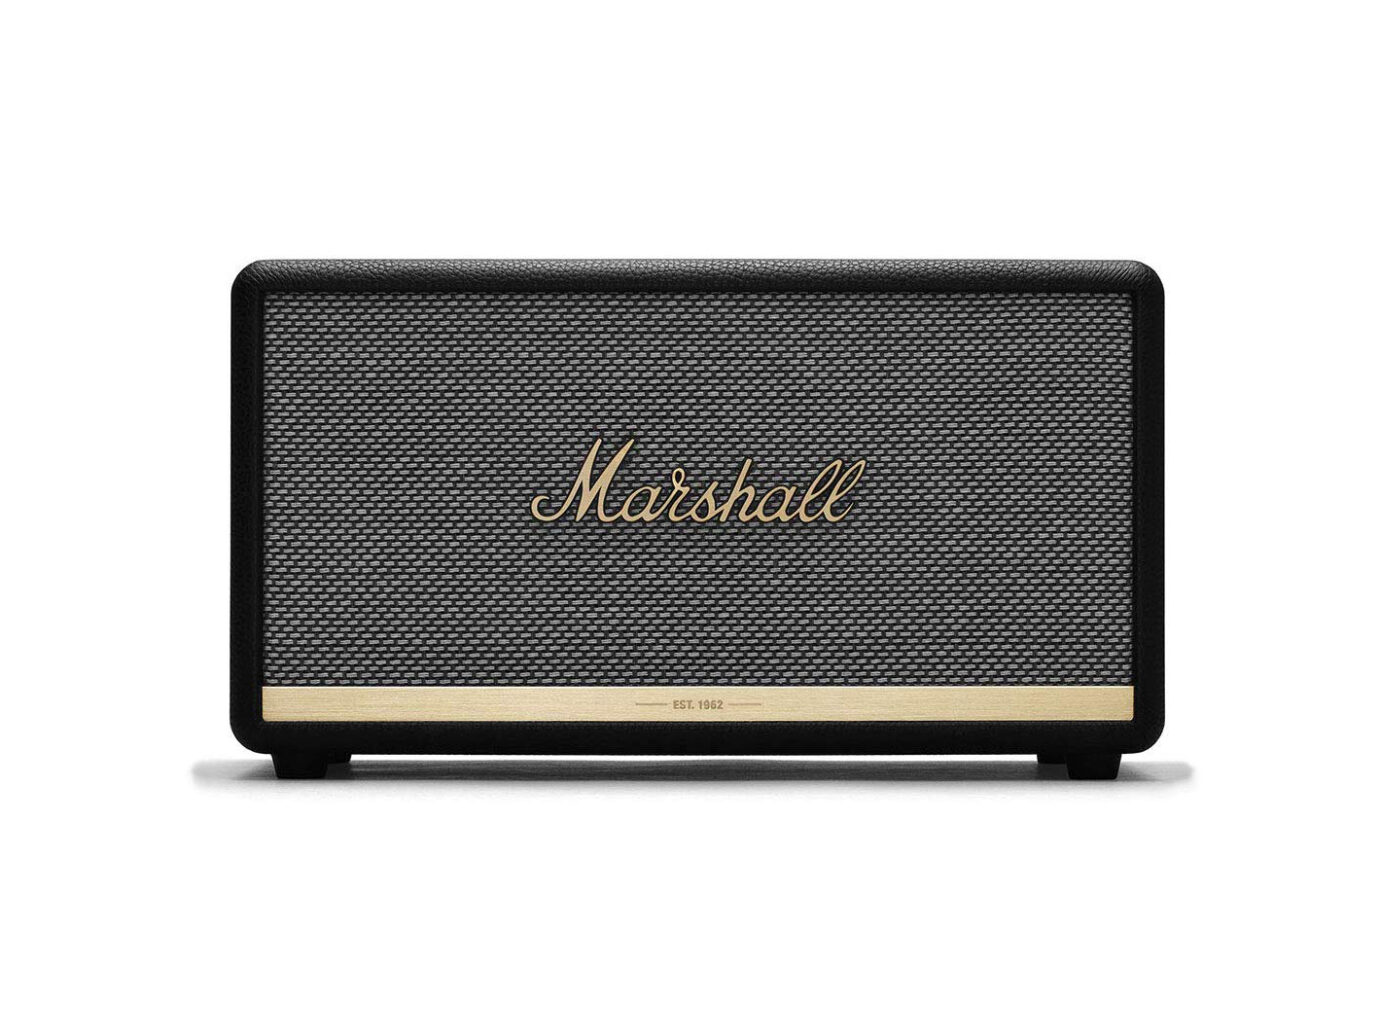 The Marshall Stanmore Wireless Bluetooth Speaker